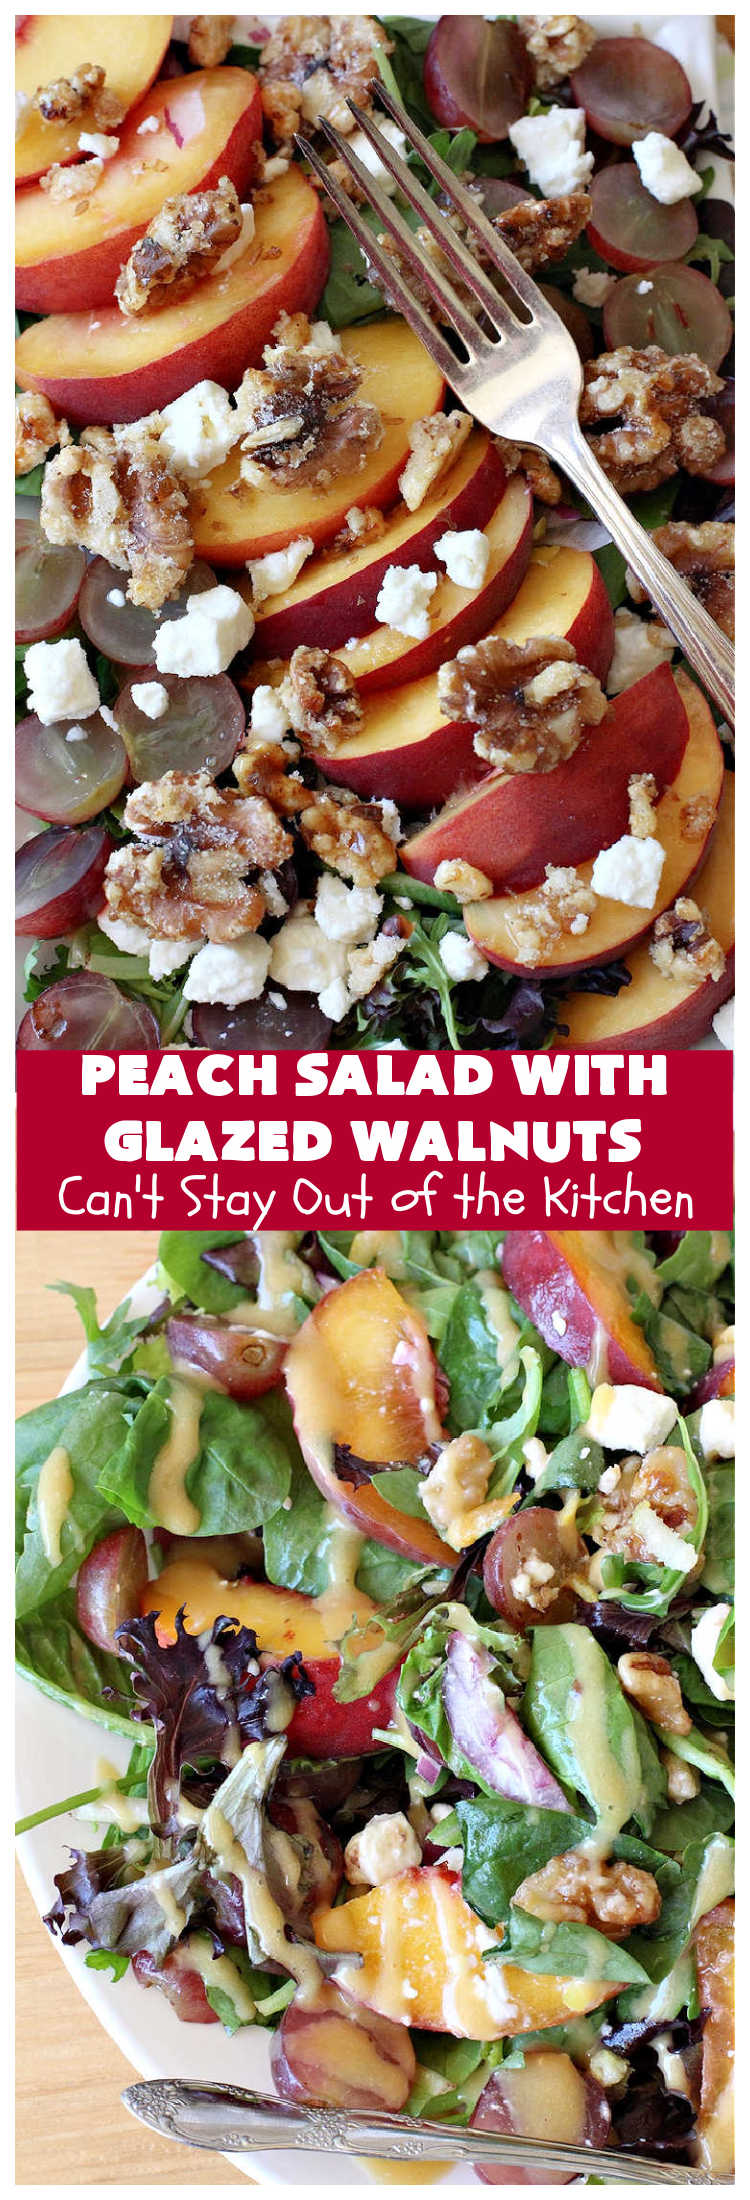 Peach Salad with Glazed Walnuts | Can't Stay Out of the Kitchen | this mouthwatering #salad includes fresh #peaches, #lemon #FetaCheese, #grapes & #GlazedWalnuts. It's terrific for company meals or entertaining. It has a delicious homemade #PeachVinaigrette. #GlutenFree #PeachSalad #PeachSaladWithGlazedWalnuts